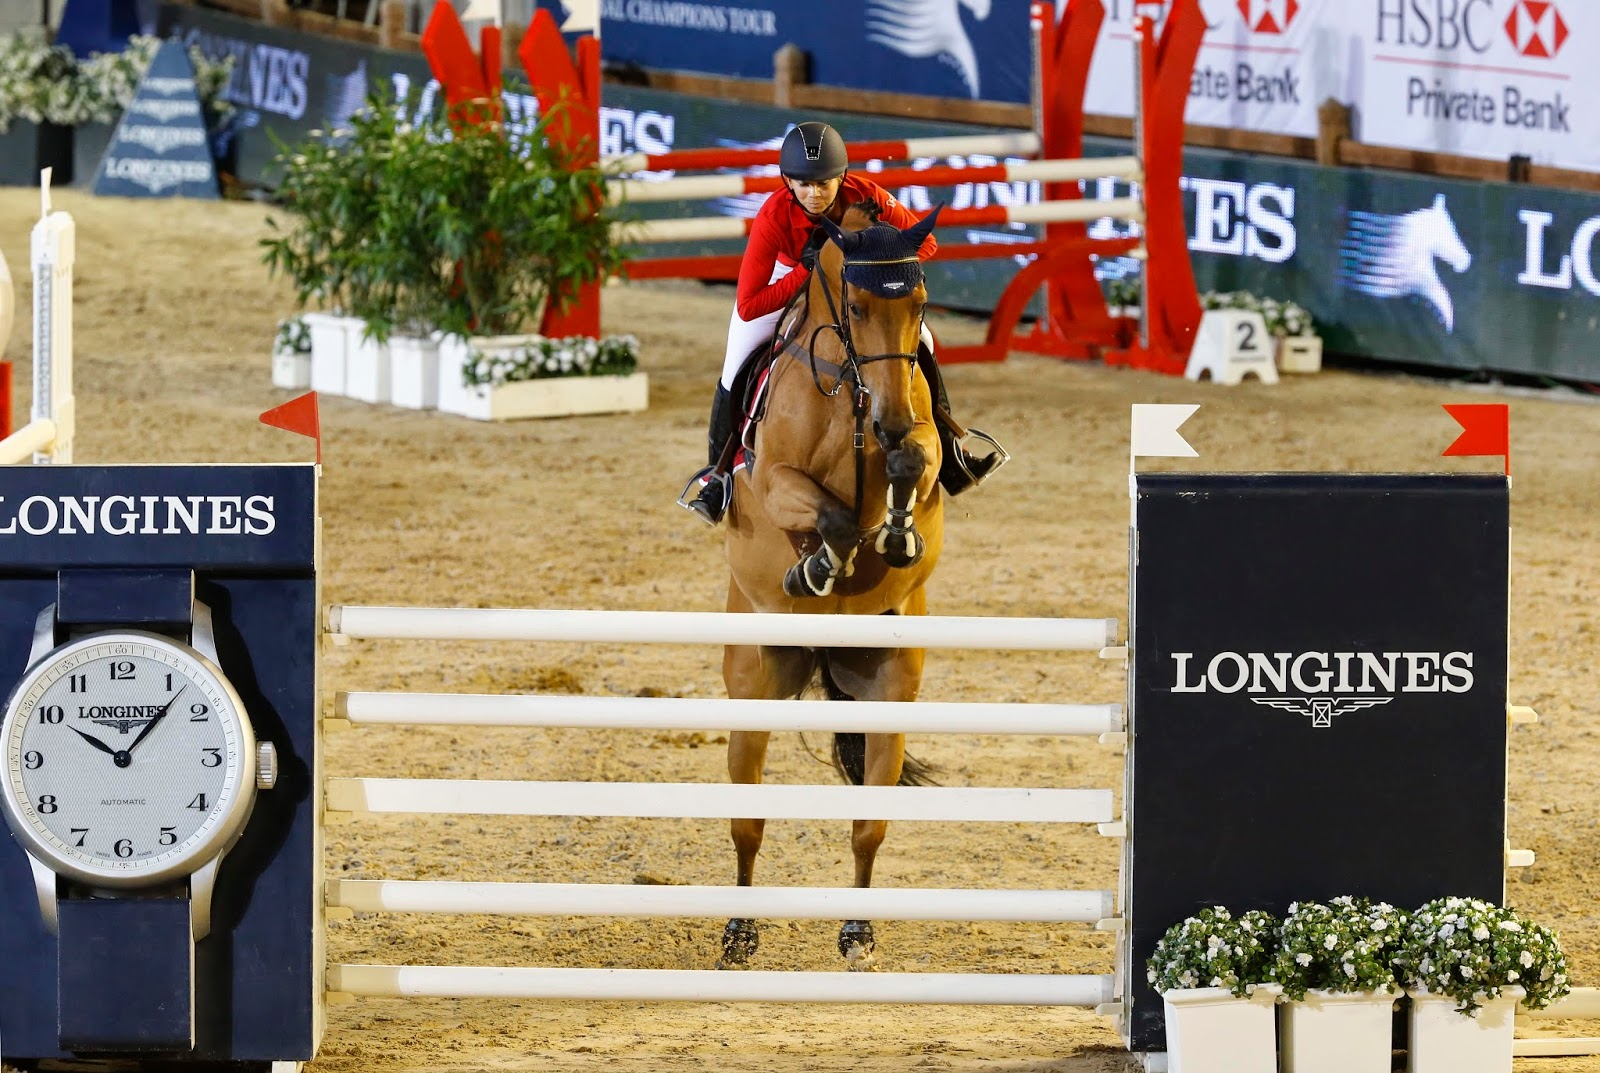 LONGINES Conquest, Global Champions Tour 2014 Montecarlo, pro-am cup, equitazione, show jumping, jane richard philips